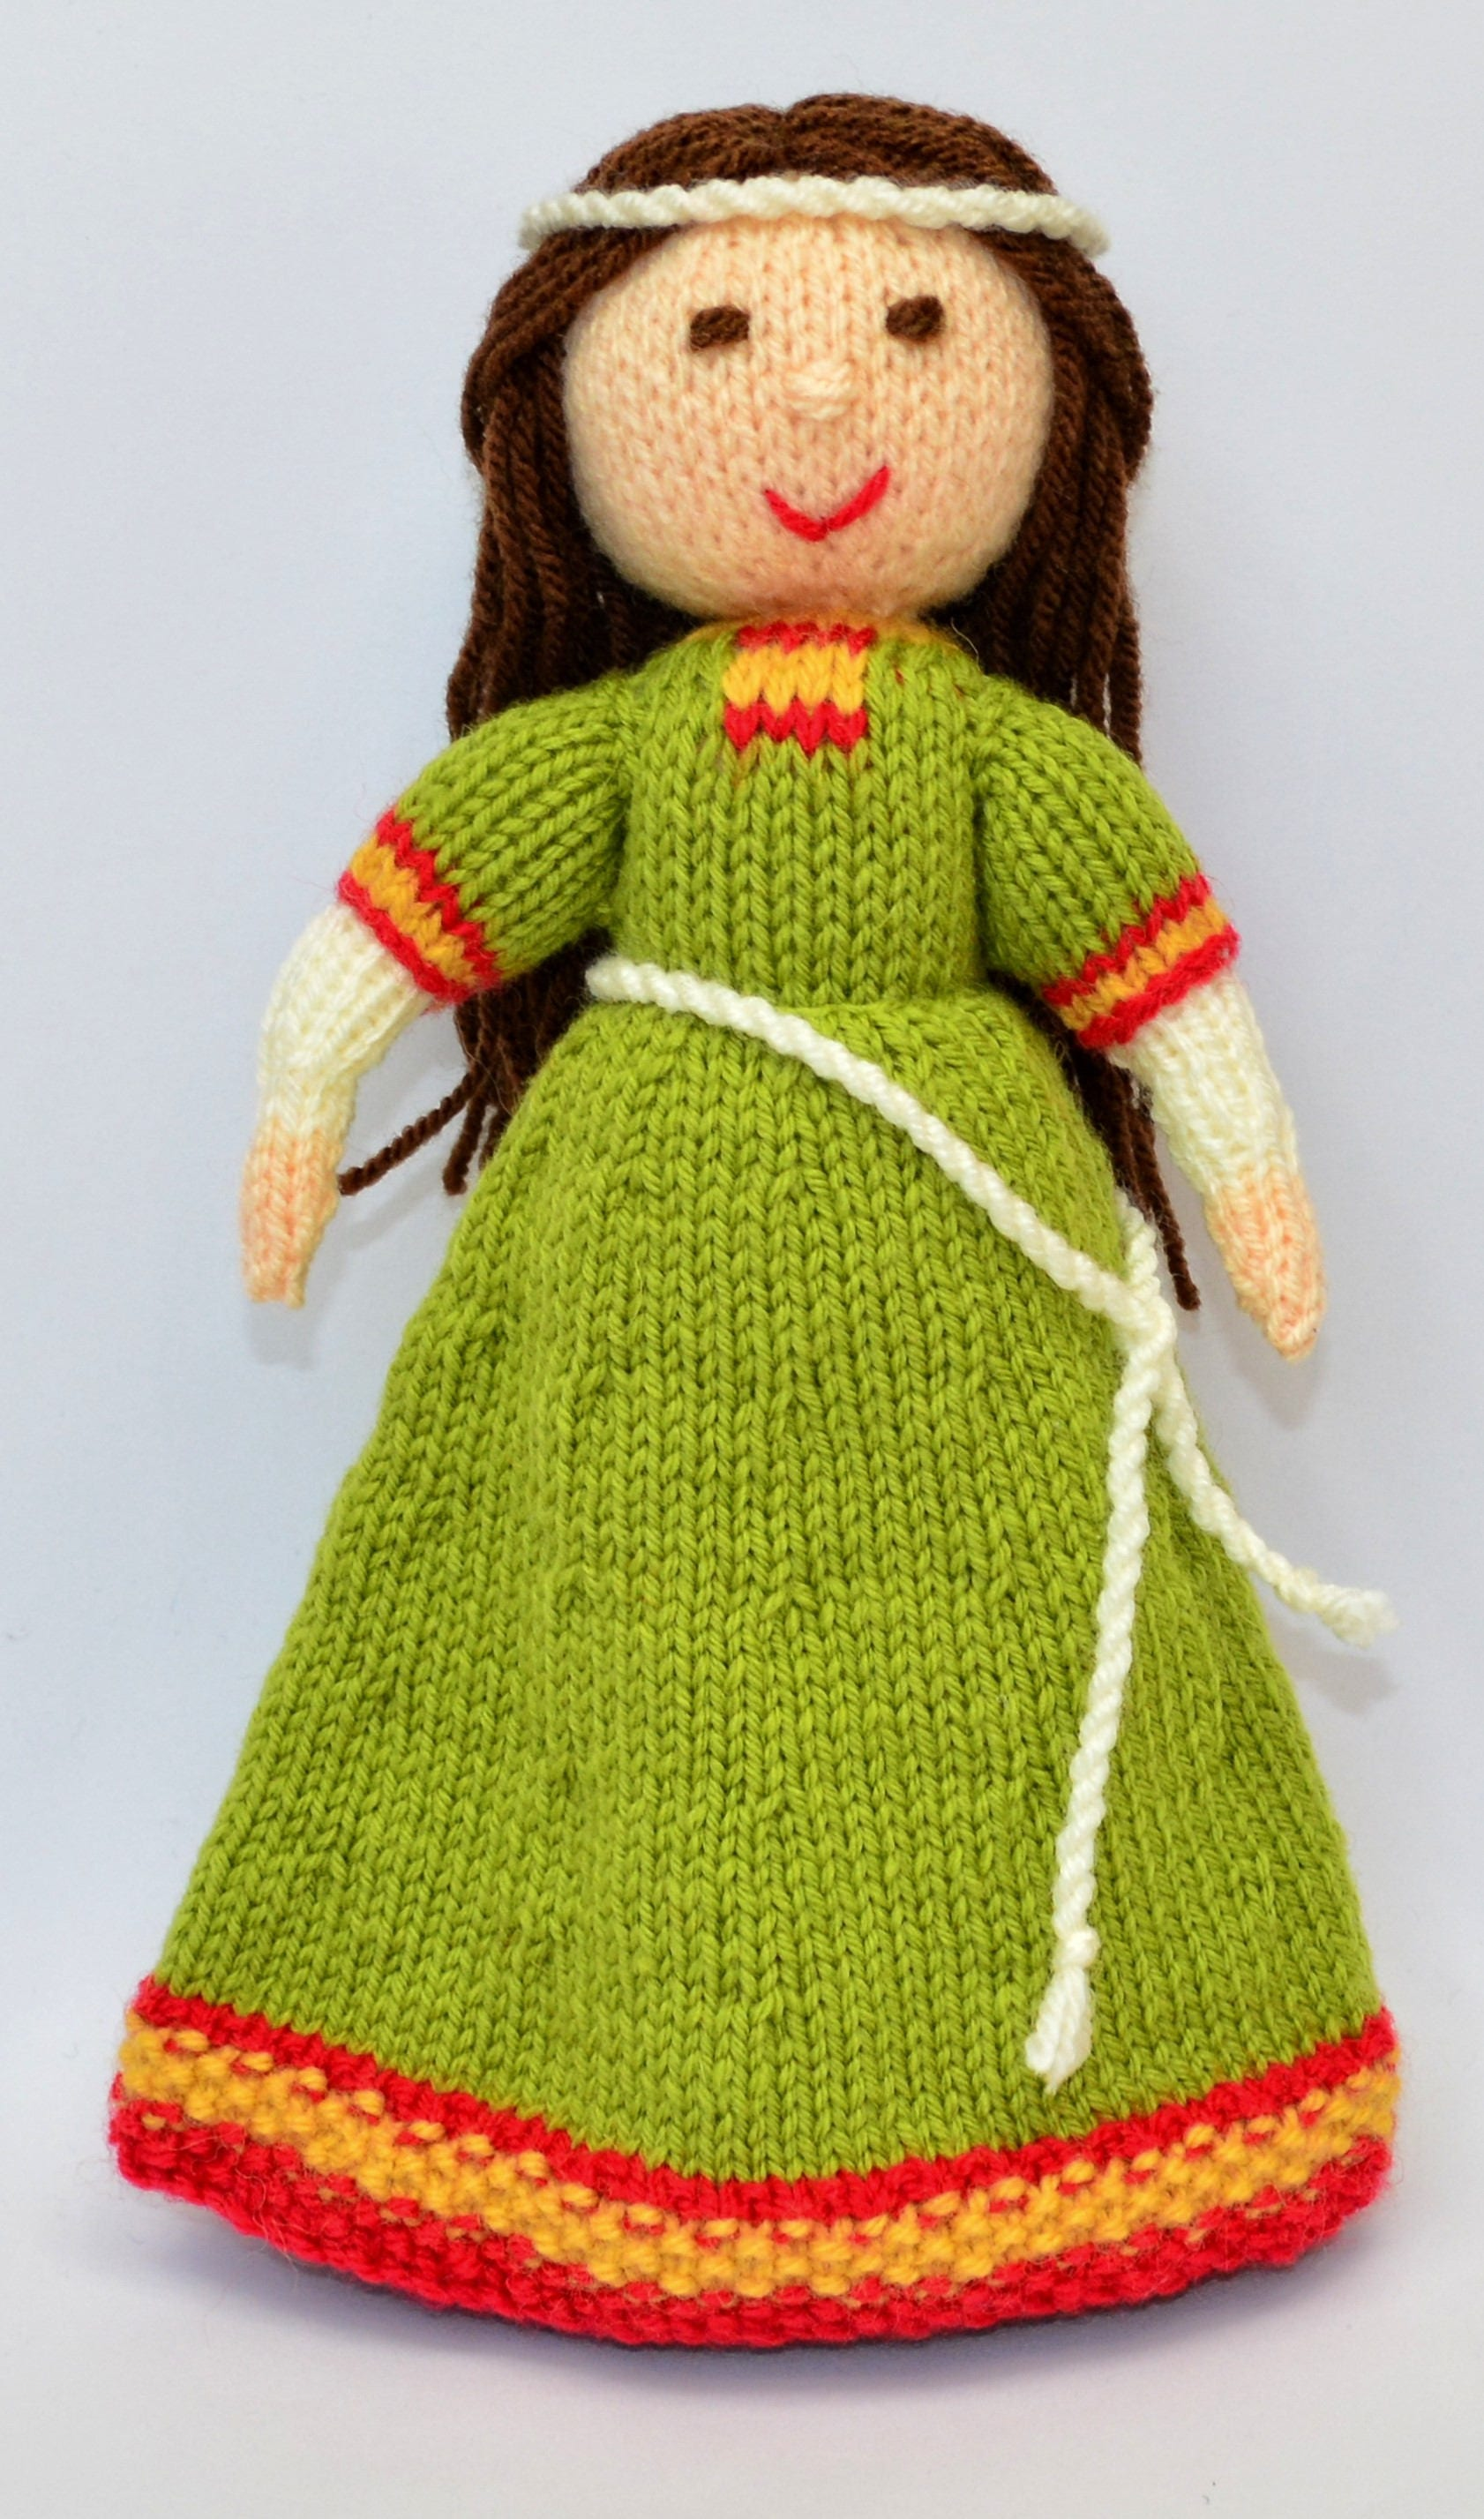 Doll Knitting Pattern - Medieval Doll - Knit Doll - Medieval Dress ...